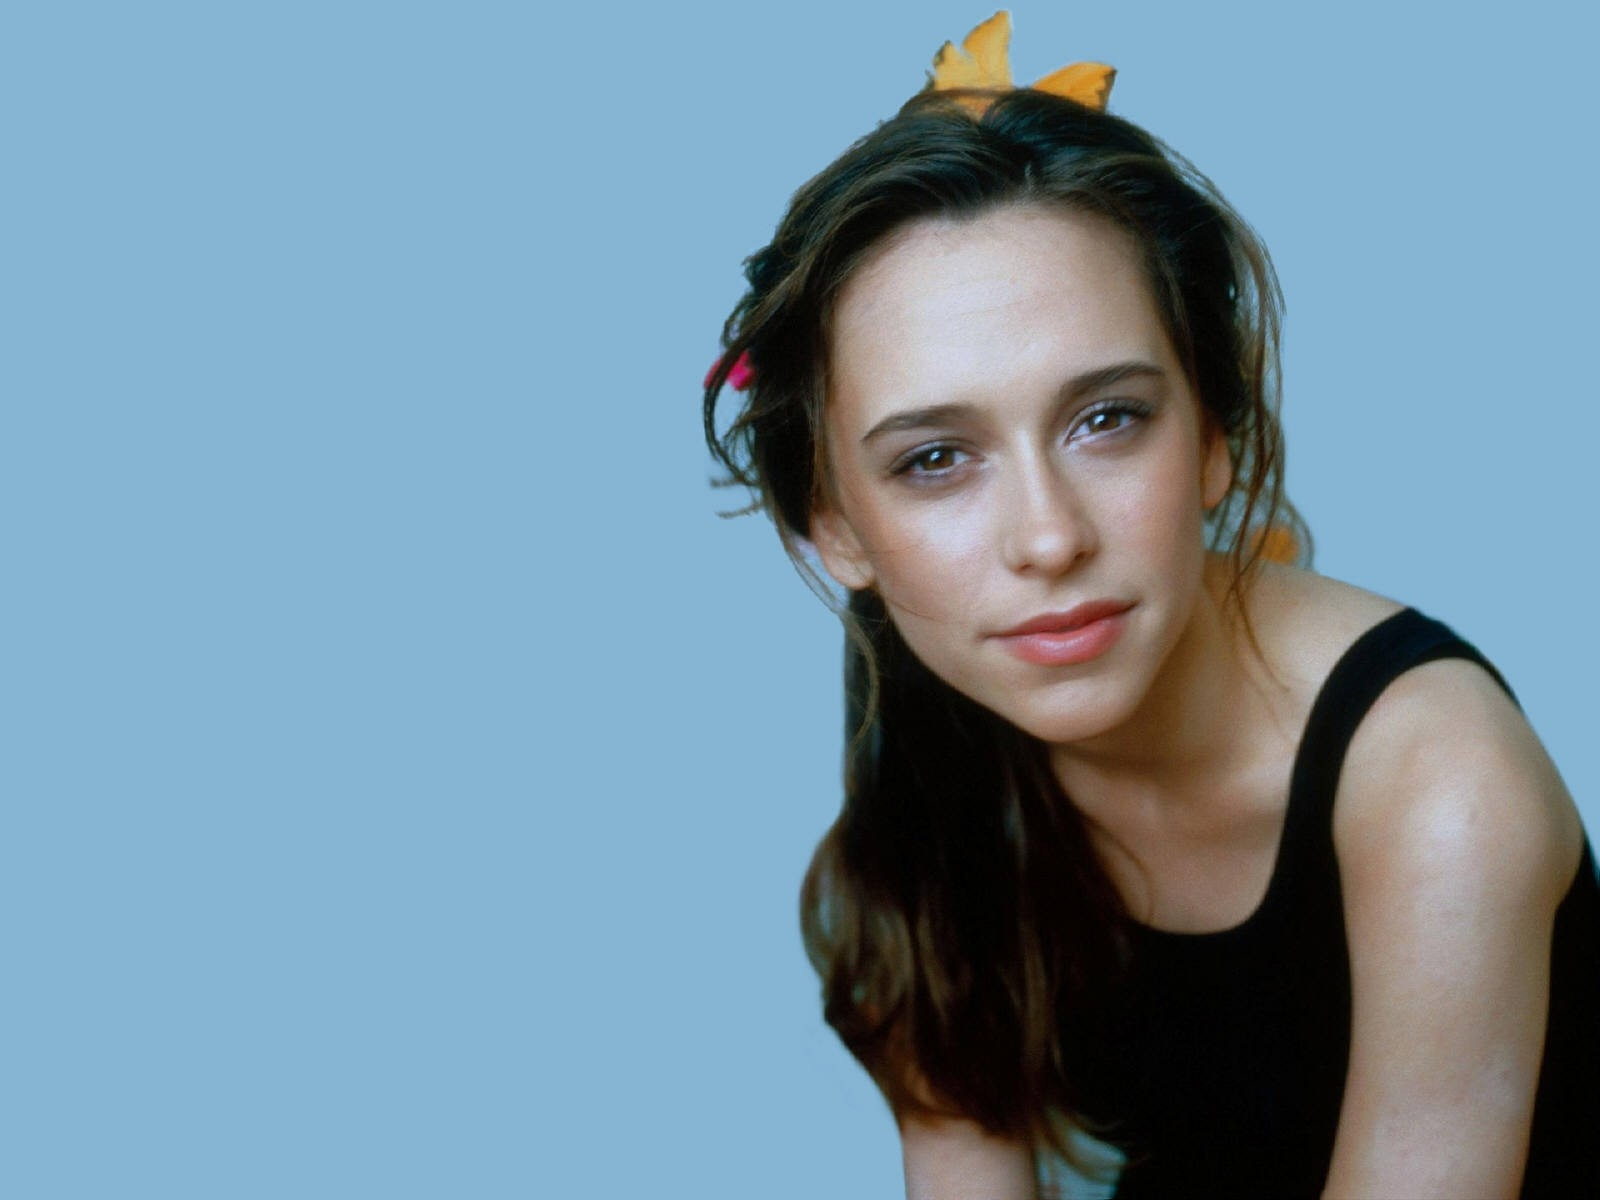 Wallpaper dell'attrice Jennifer Love Hewitt